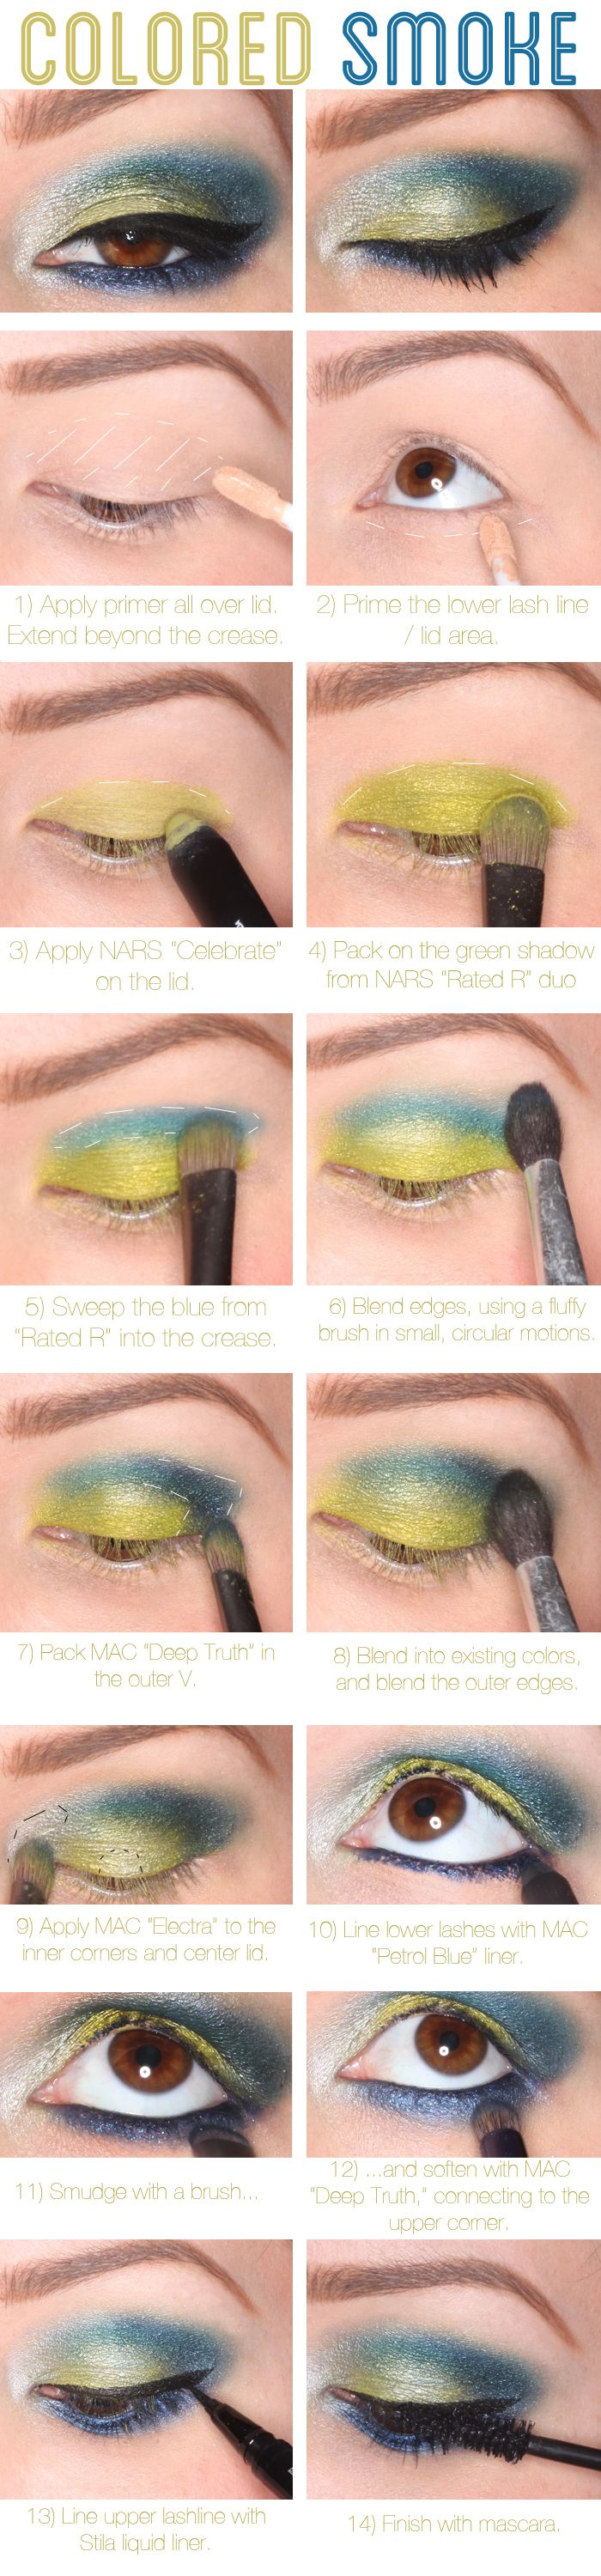 Colorful Smokey Eye Tutorial